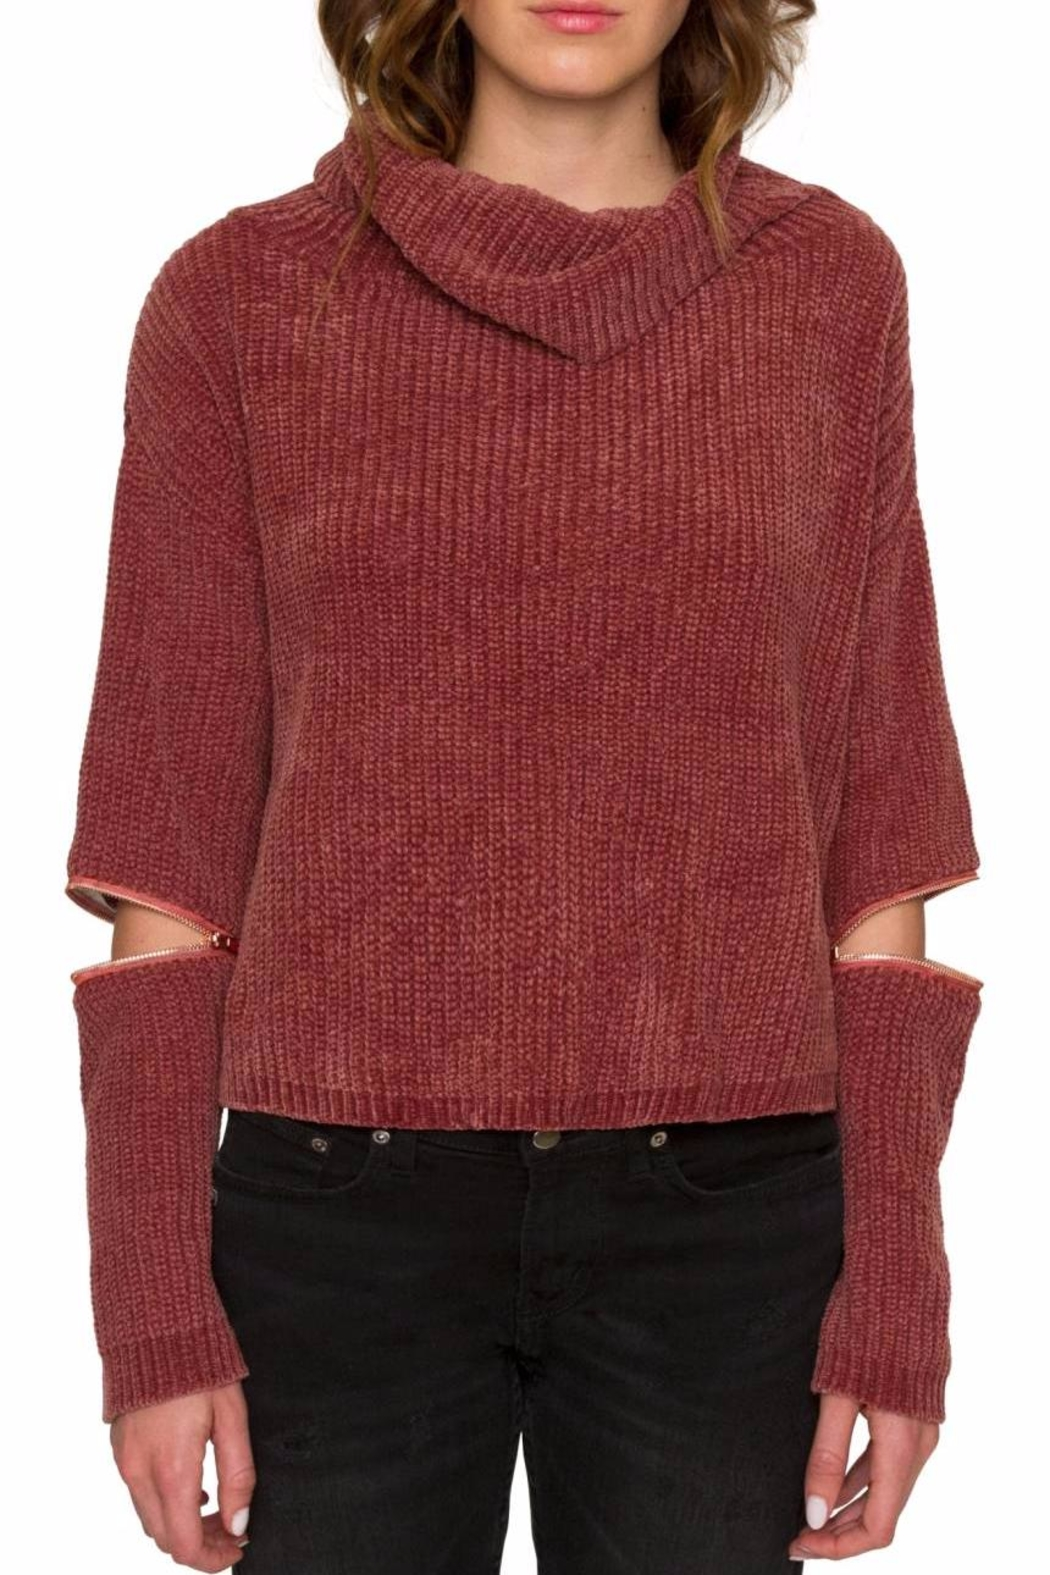 Willow & Clay Zip Sleeve Turtleneck Top - Main Image